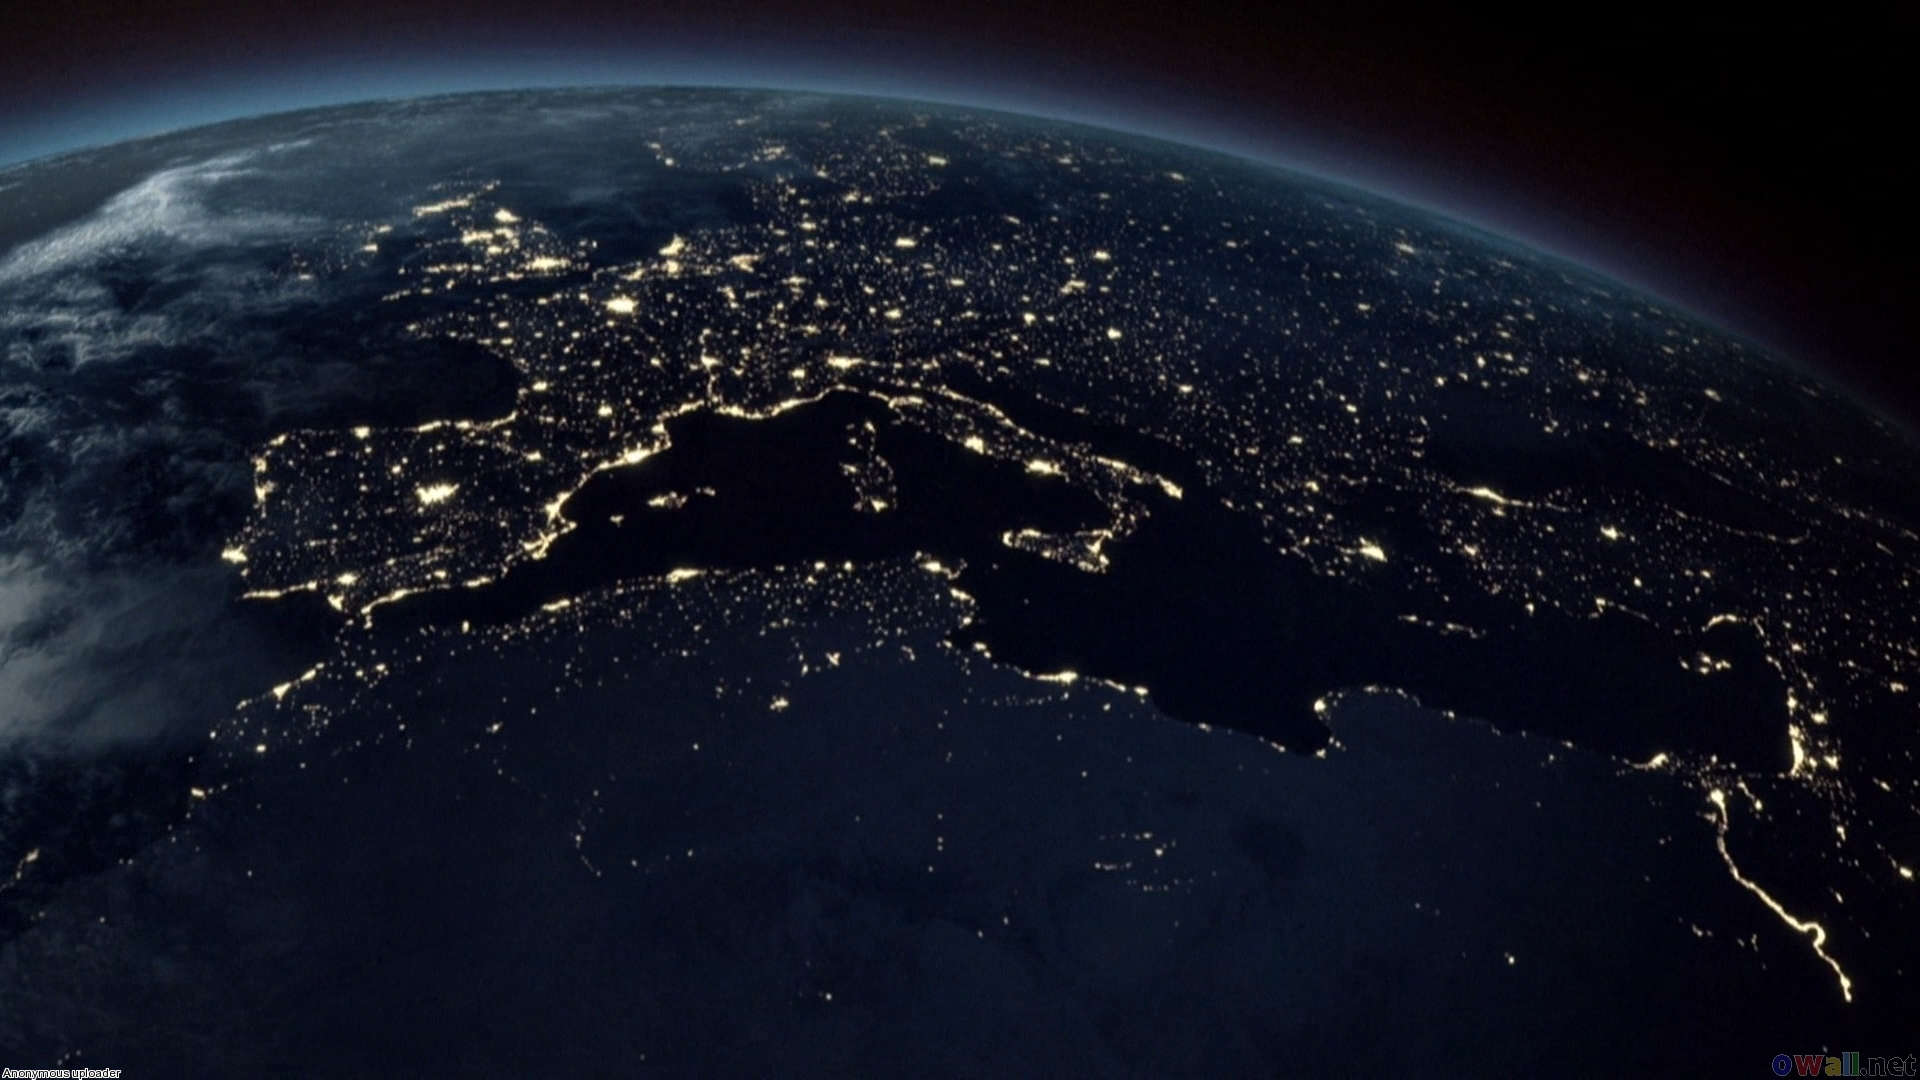 Earth at Night | Europe Hd Wallpaper | Wide Screen ...